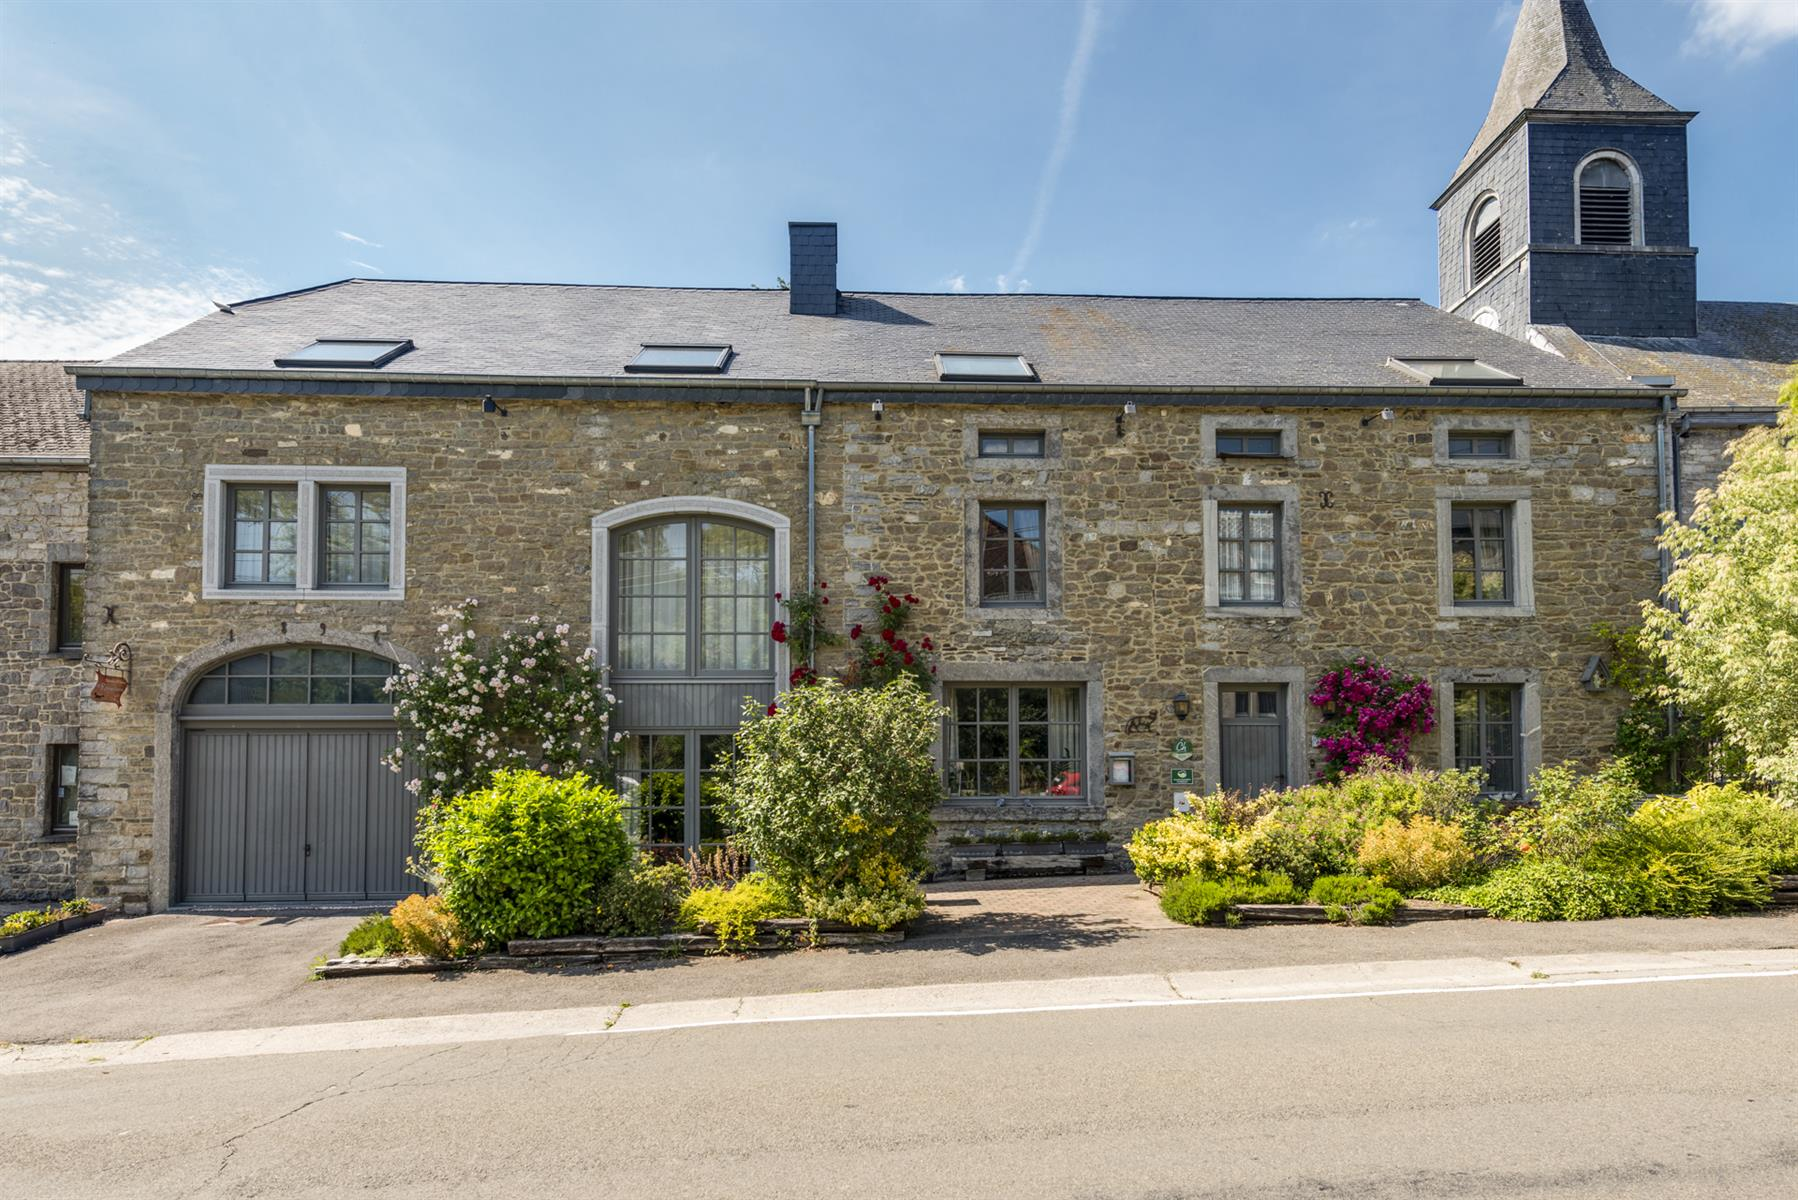 Maison - Wellin Chanly - #3886203-0